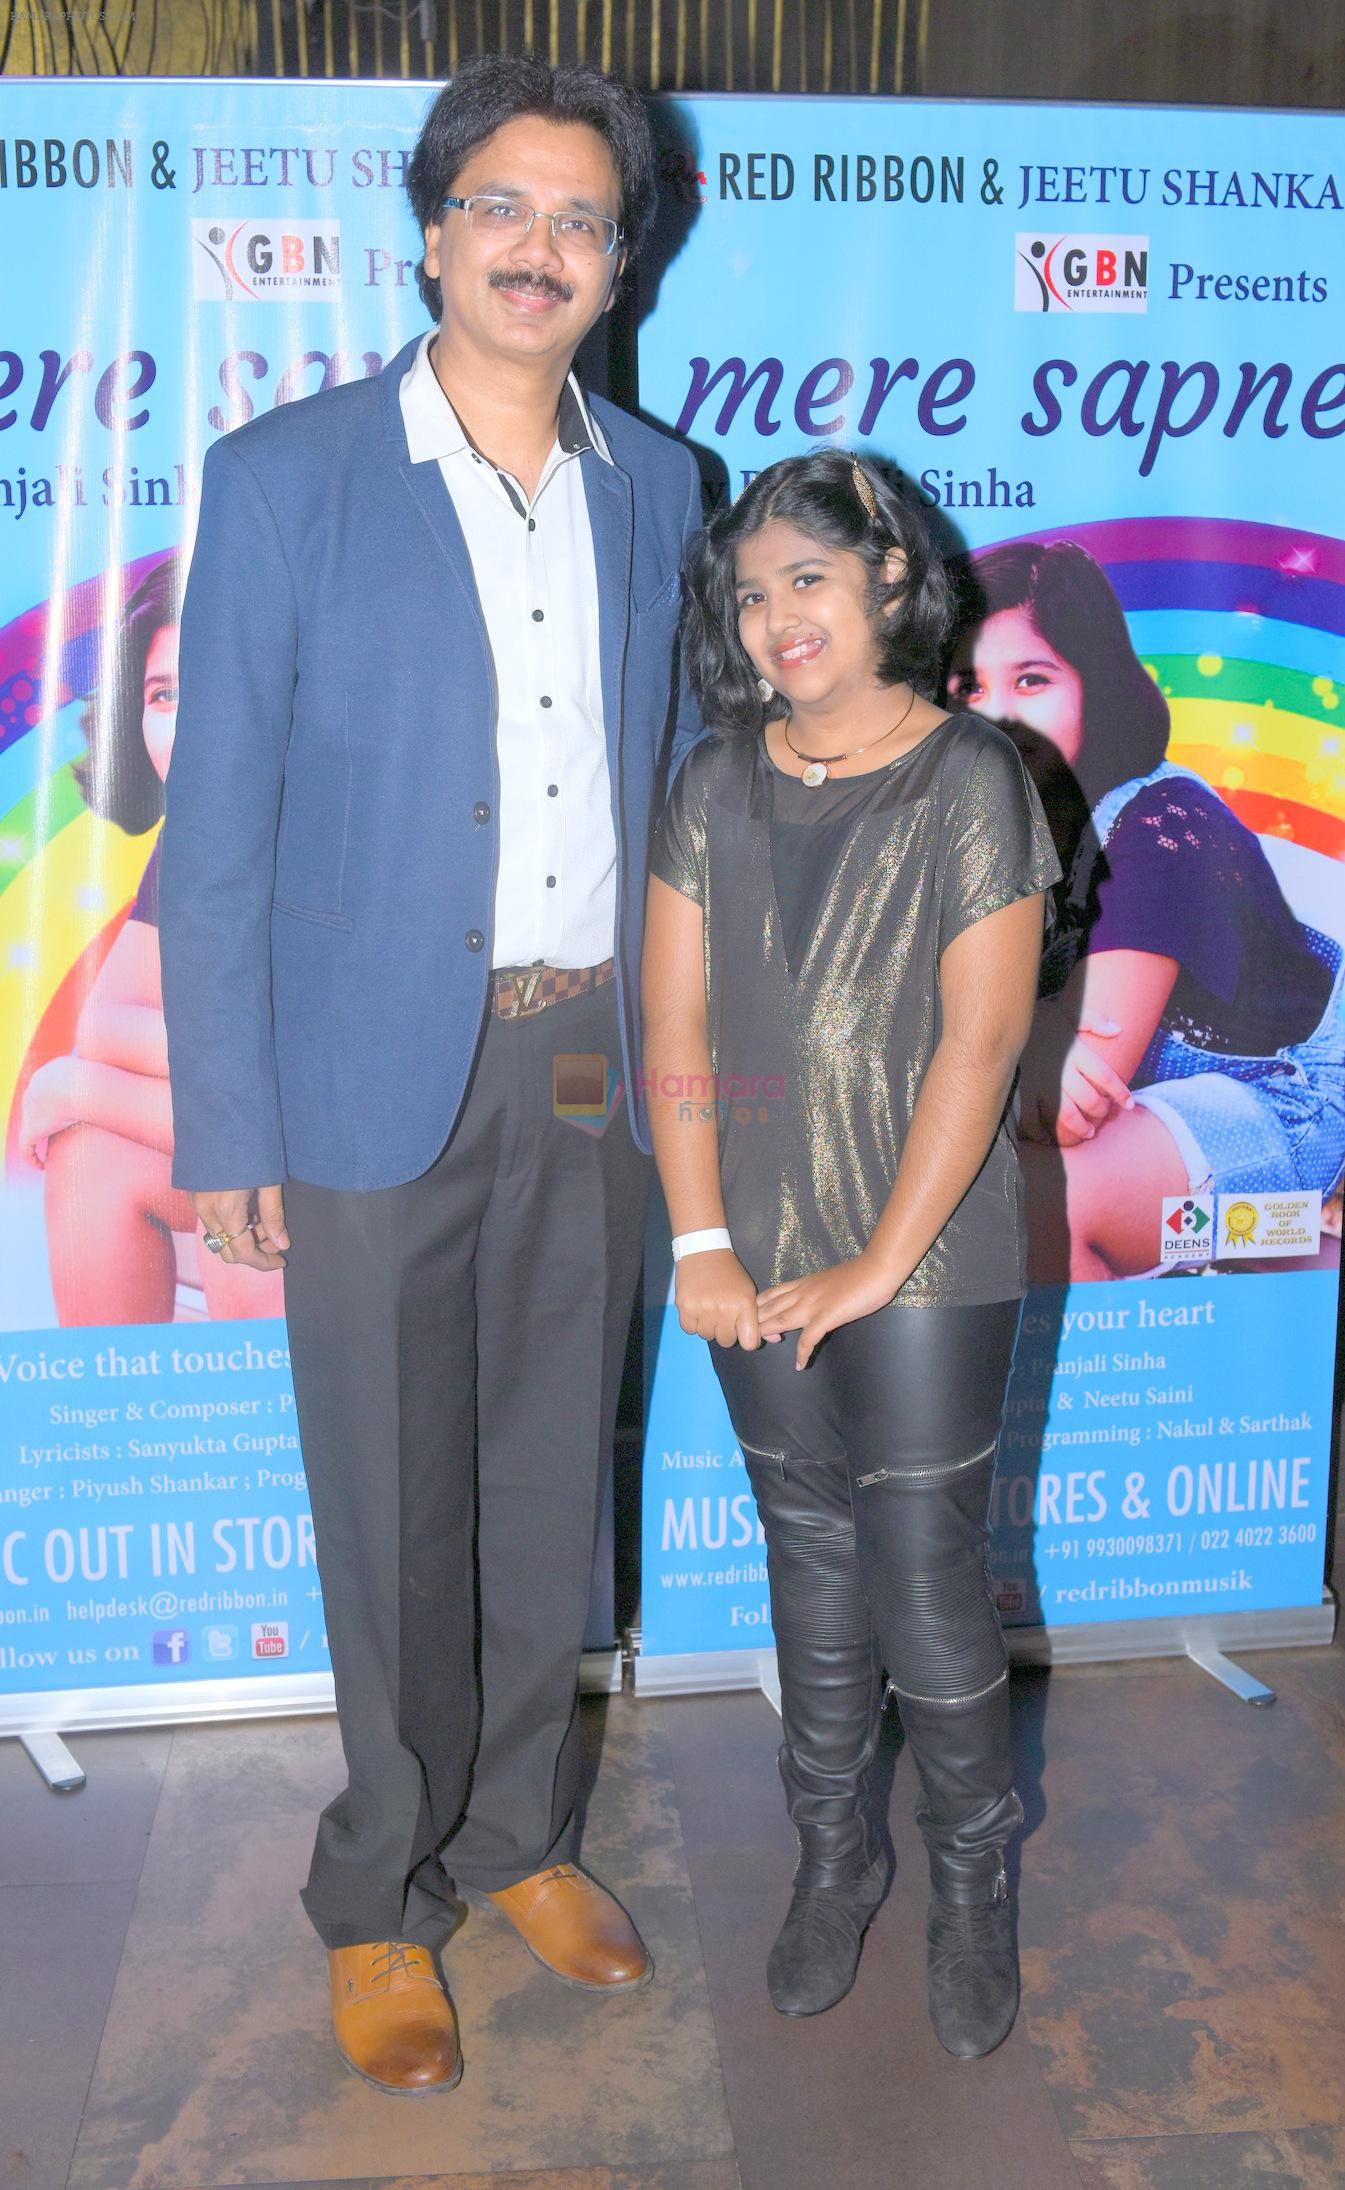 Jeetu Shankar with Pranjali Sinha at the Launch of Youngest Music Composer in Golden Book of World Records 2016 Pranjali Sinha's new album MERE SAPNE